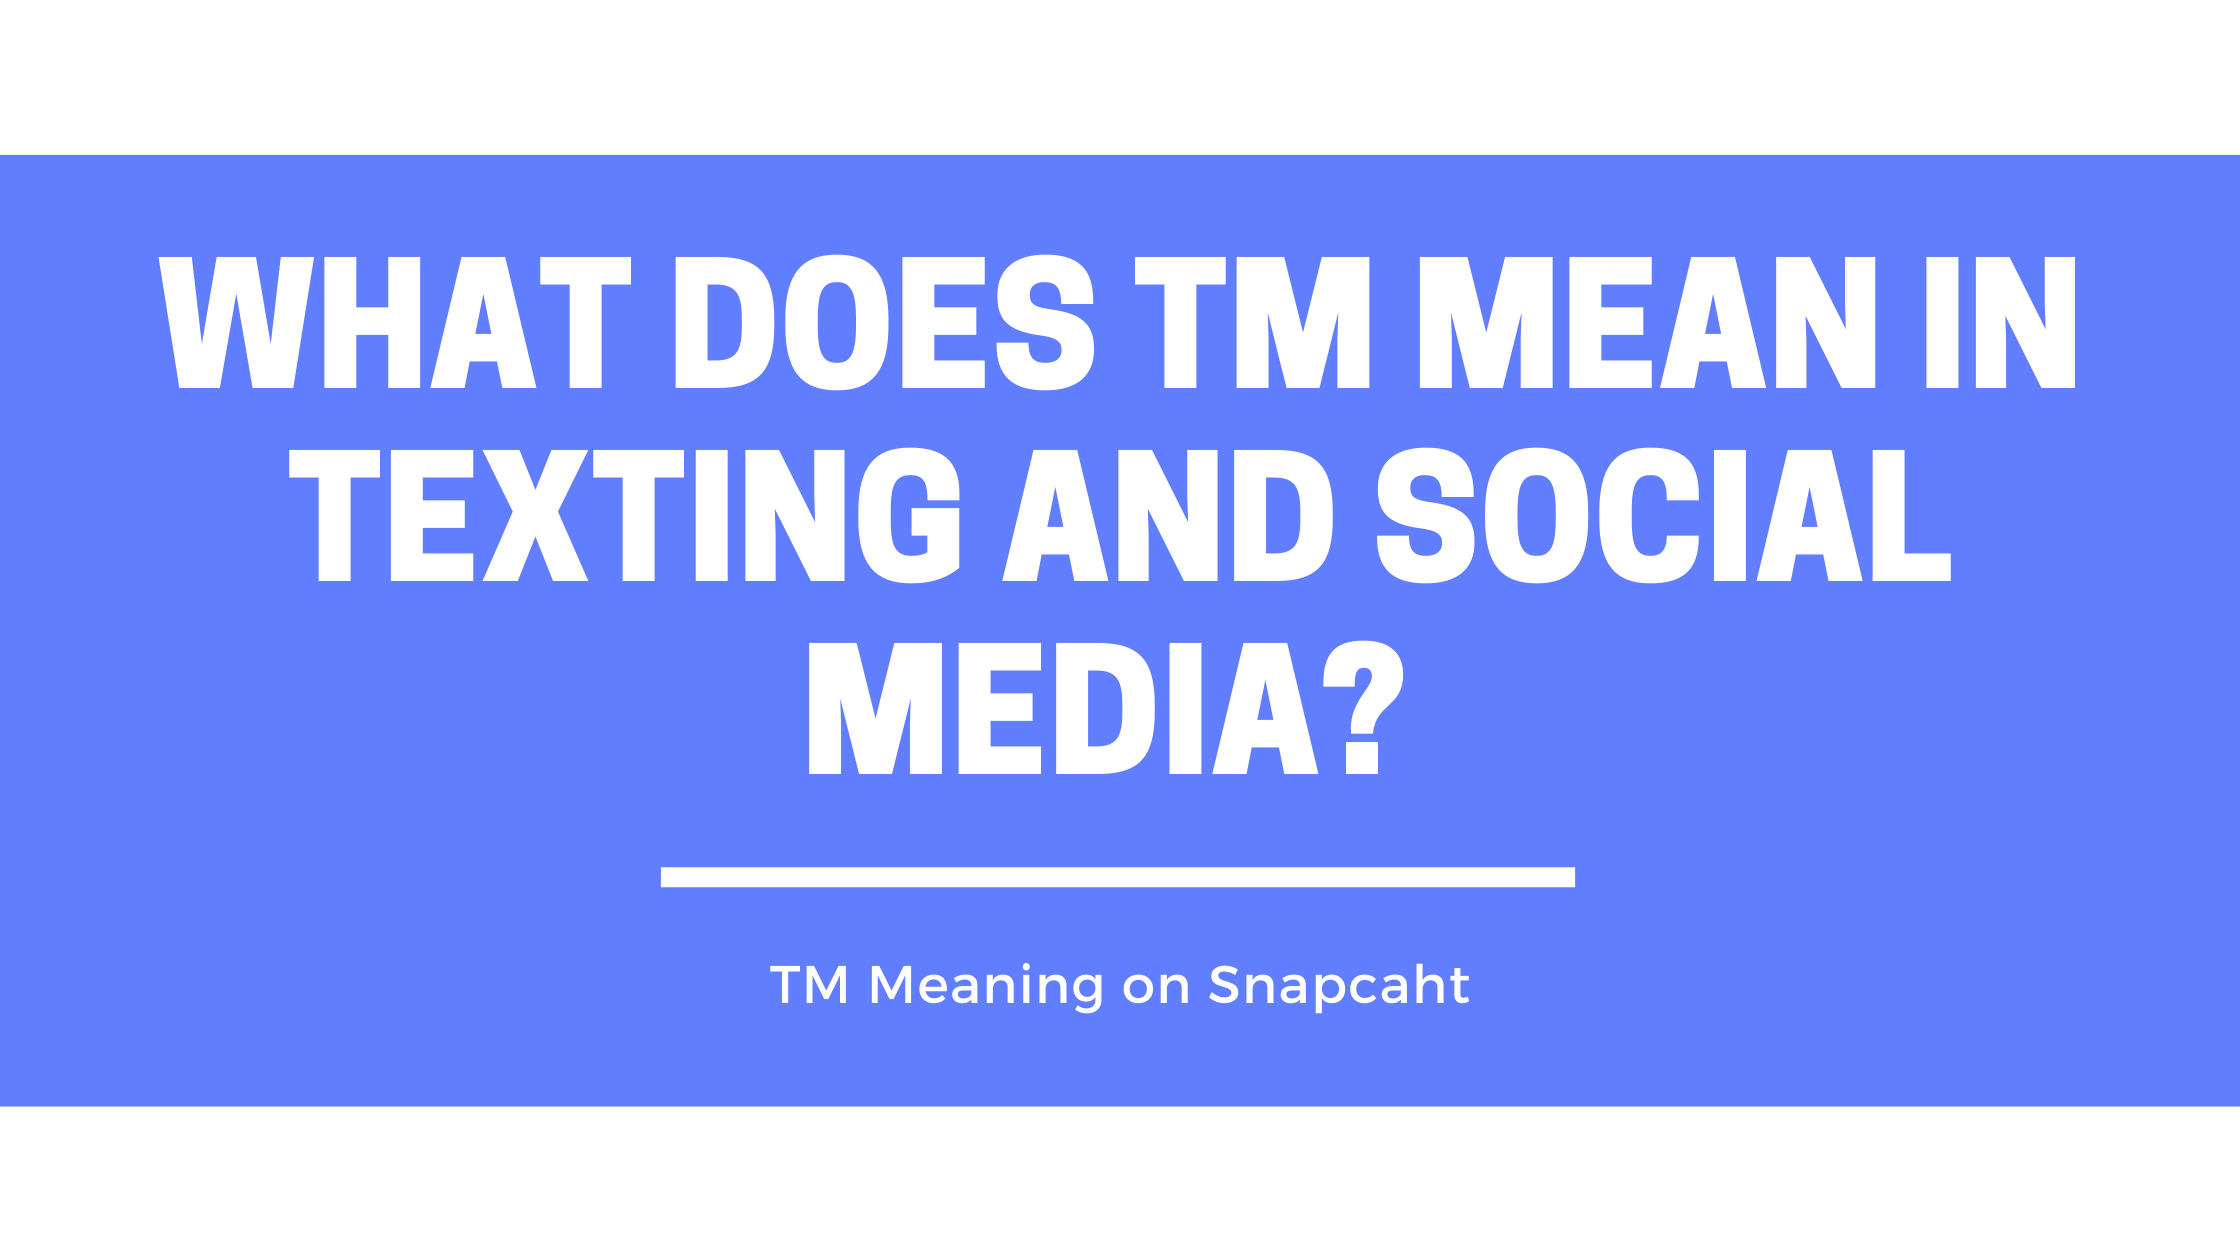 What Does TM Mean in Texting and Social Media